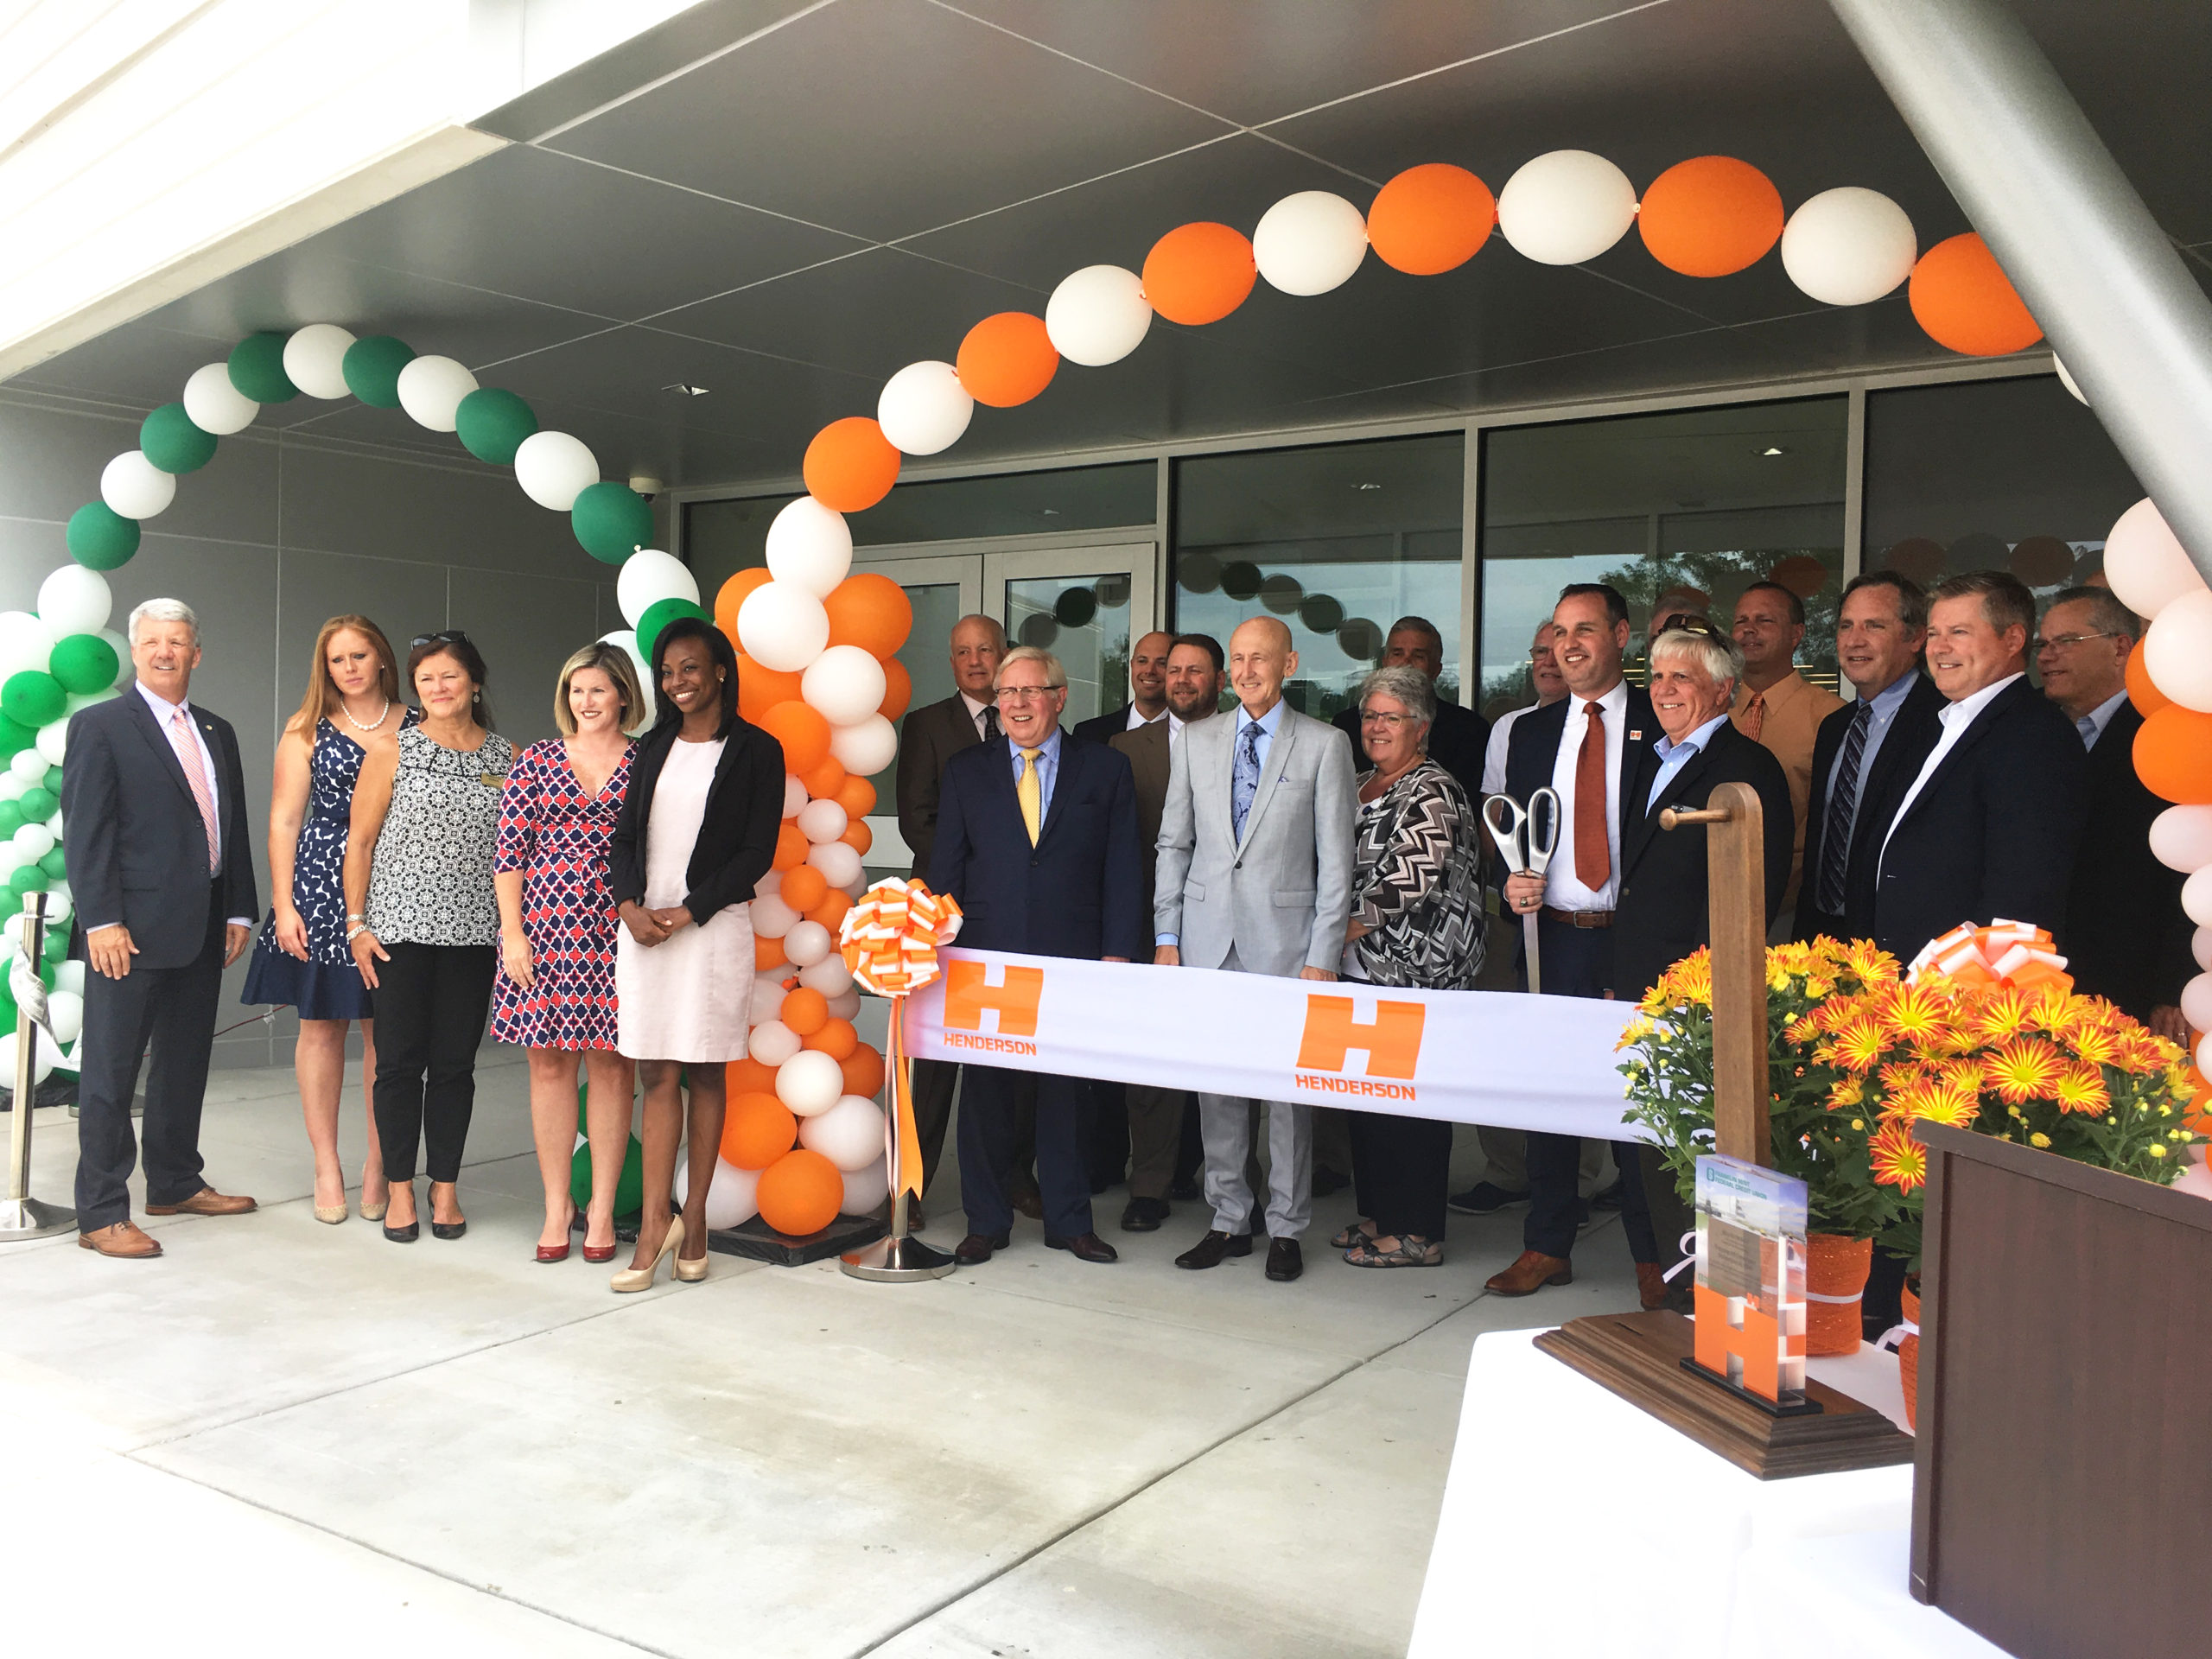 Construction Complete at FMFCU's New Headquarters in Chadds Ford